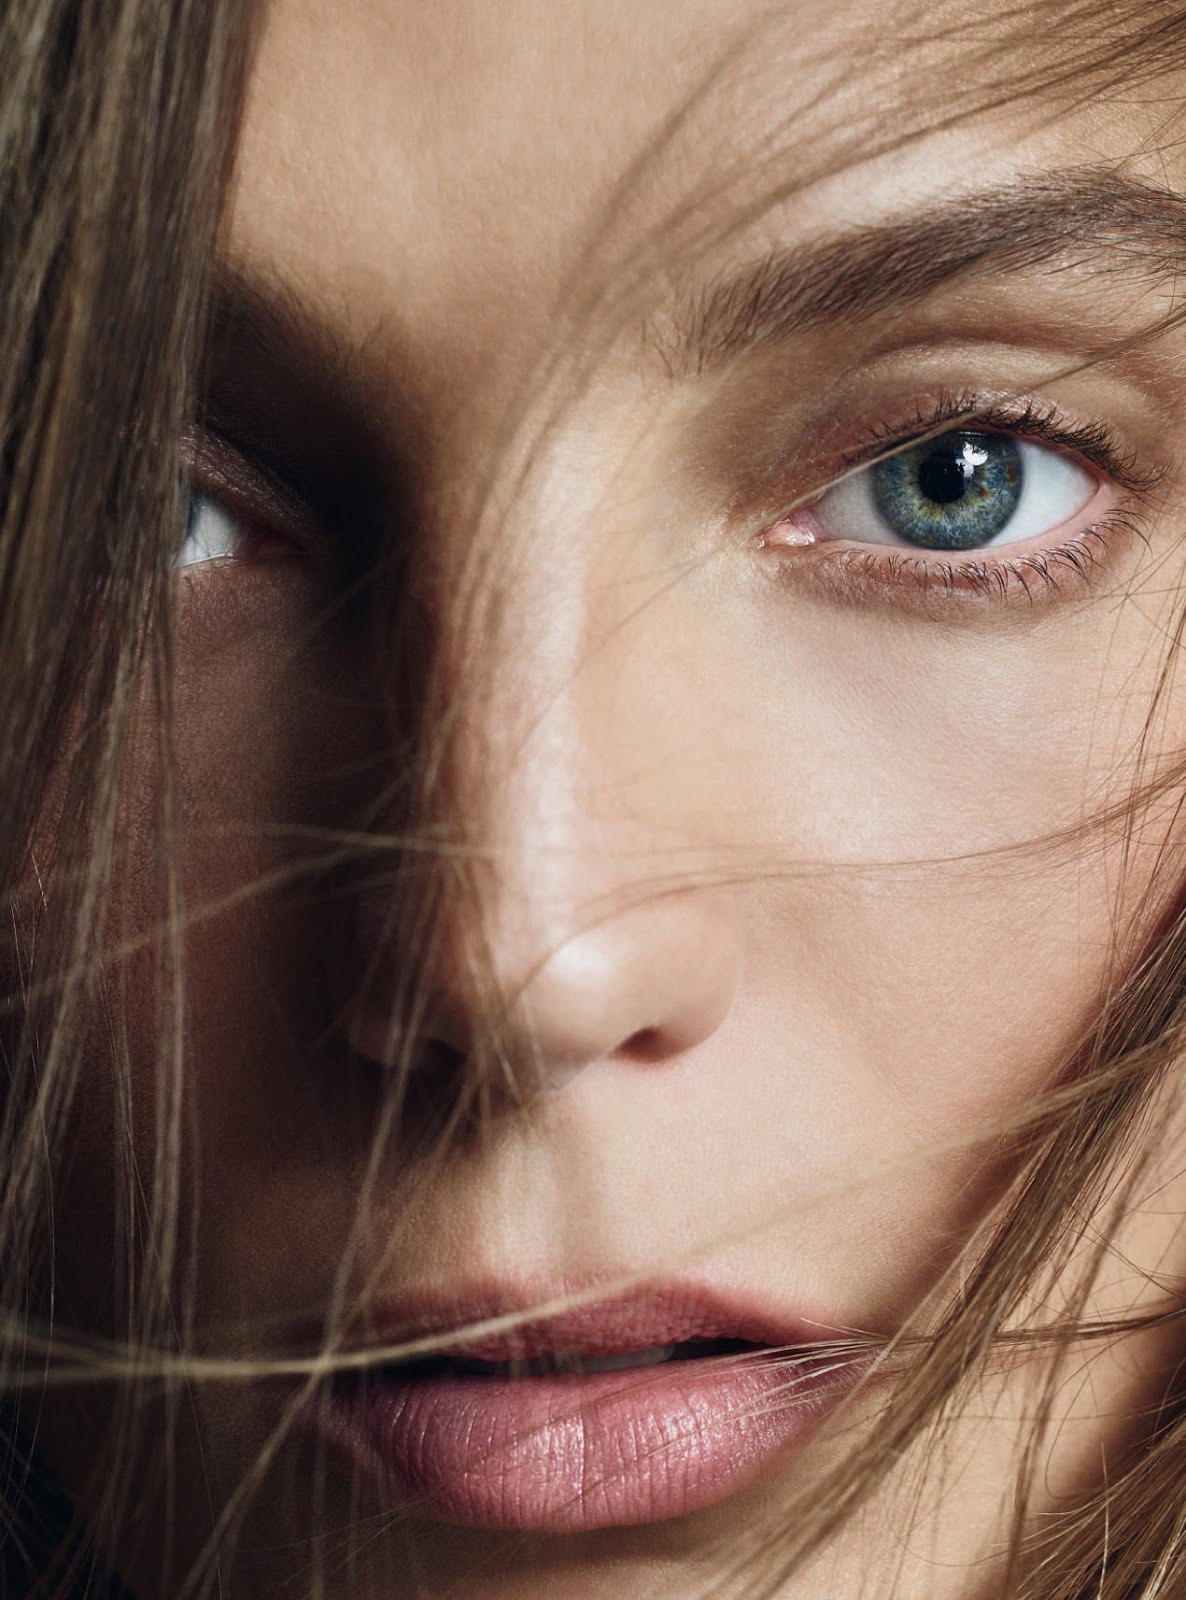 Daria Werbowy, The Divine Model